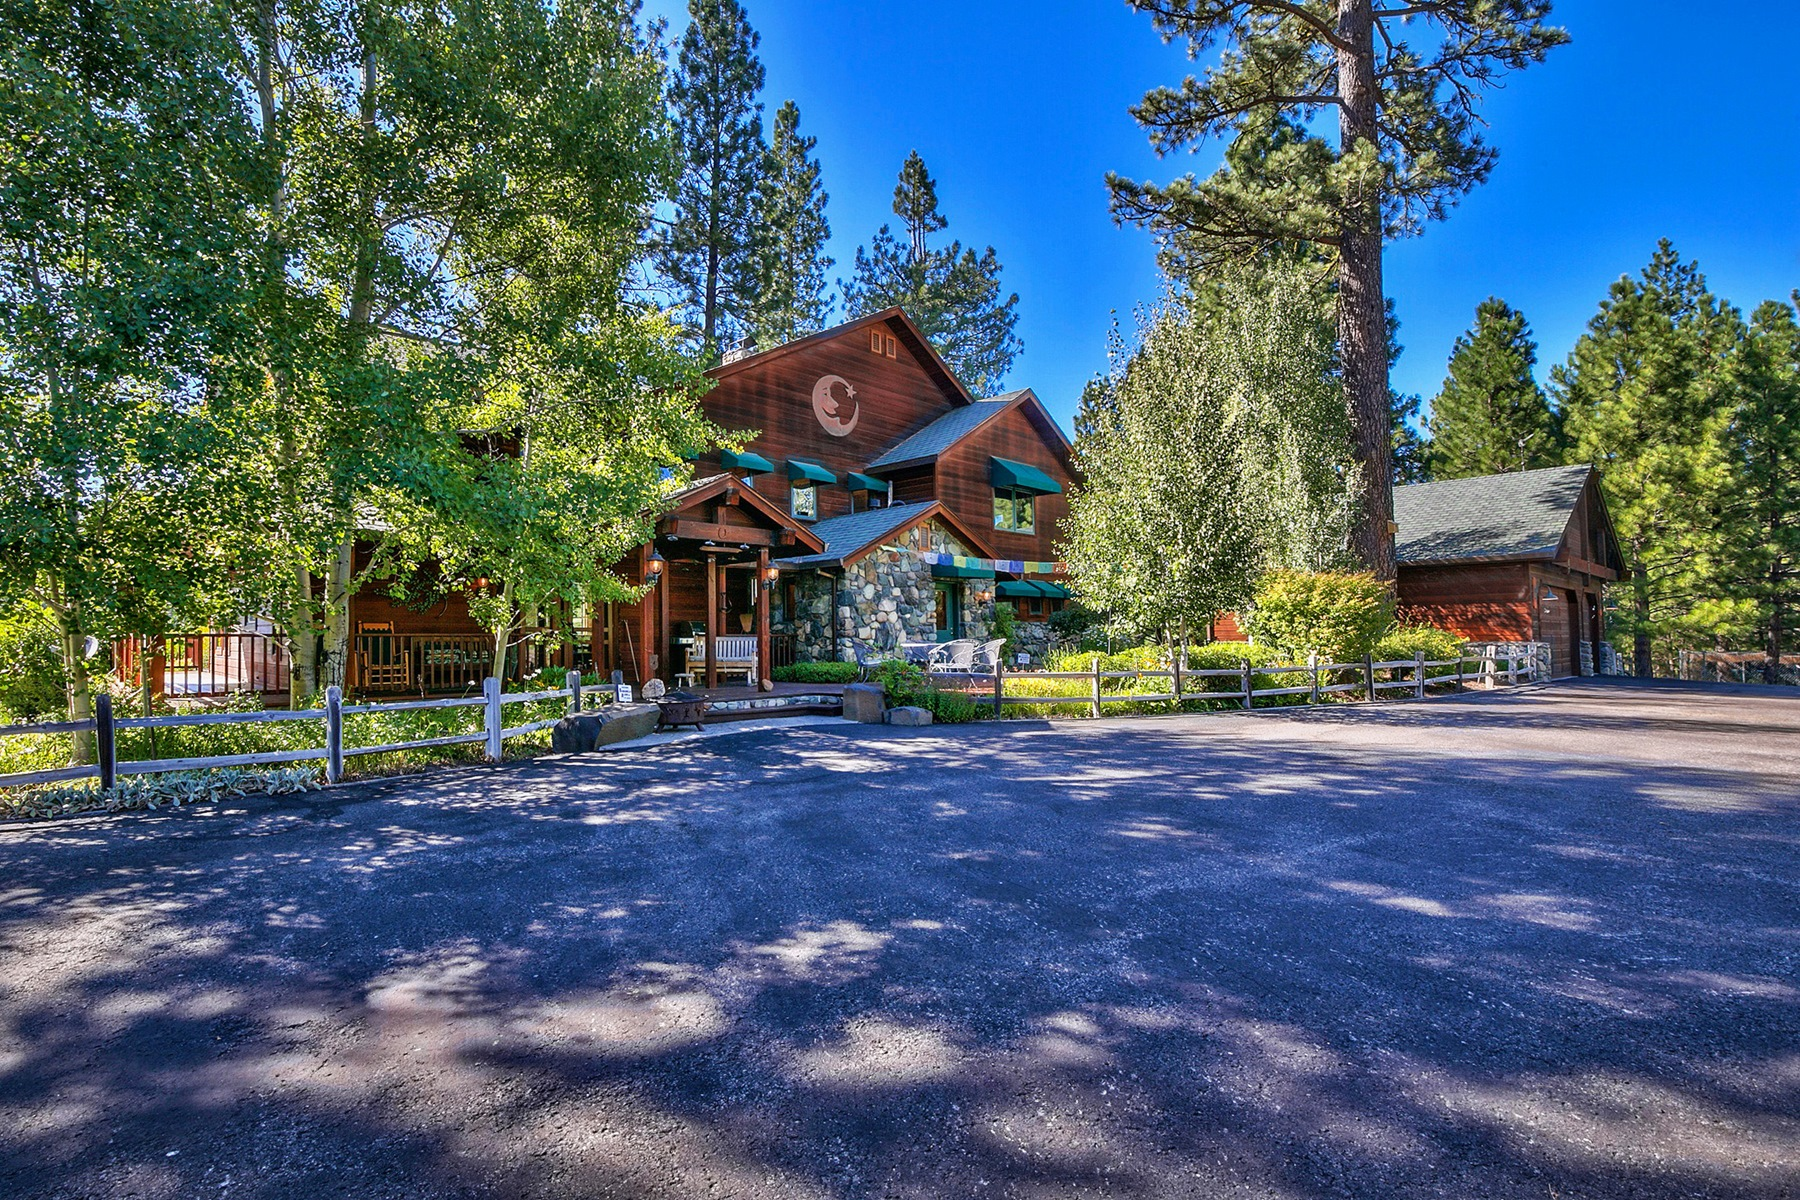 Single Family Home for Active at 482 Smith Creek Road Graeagle, California 96103 United States